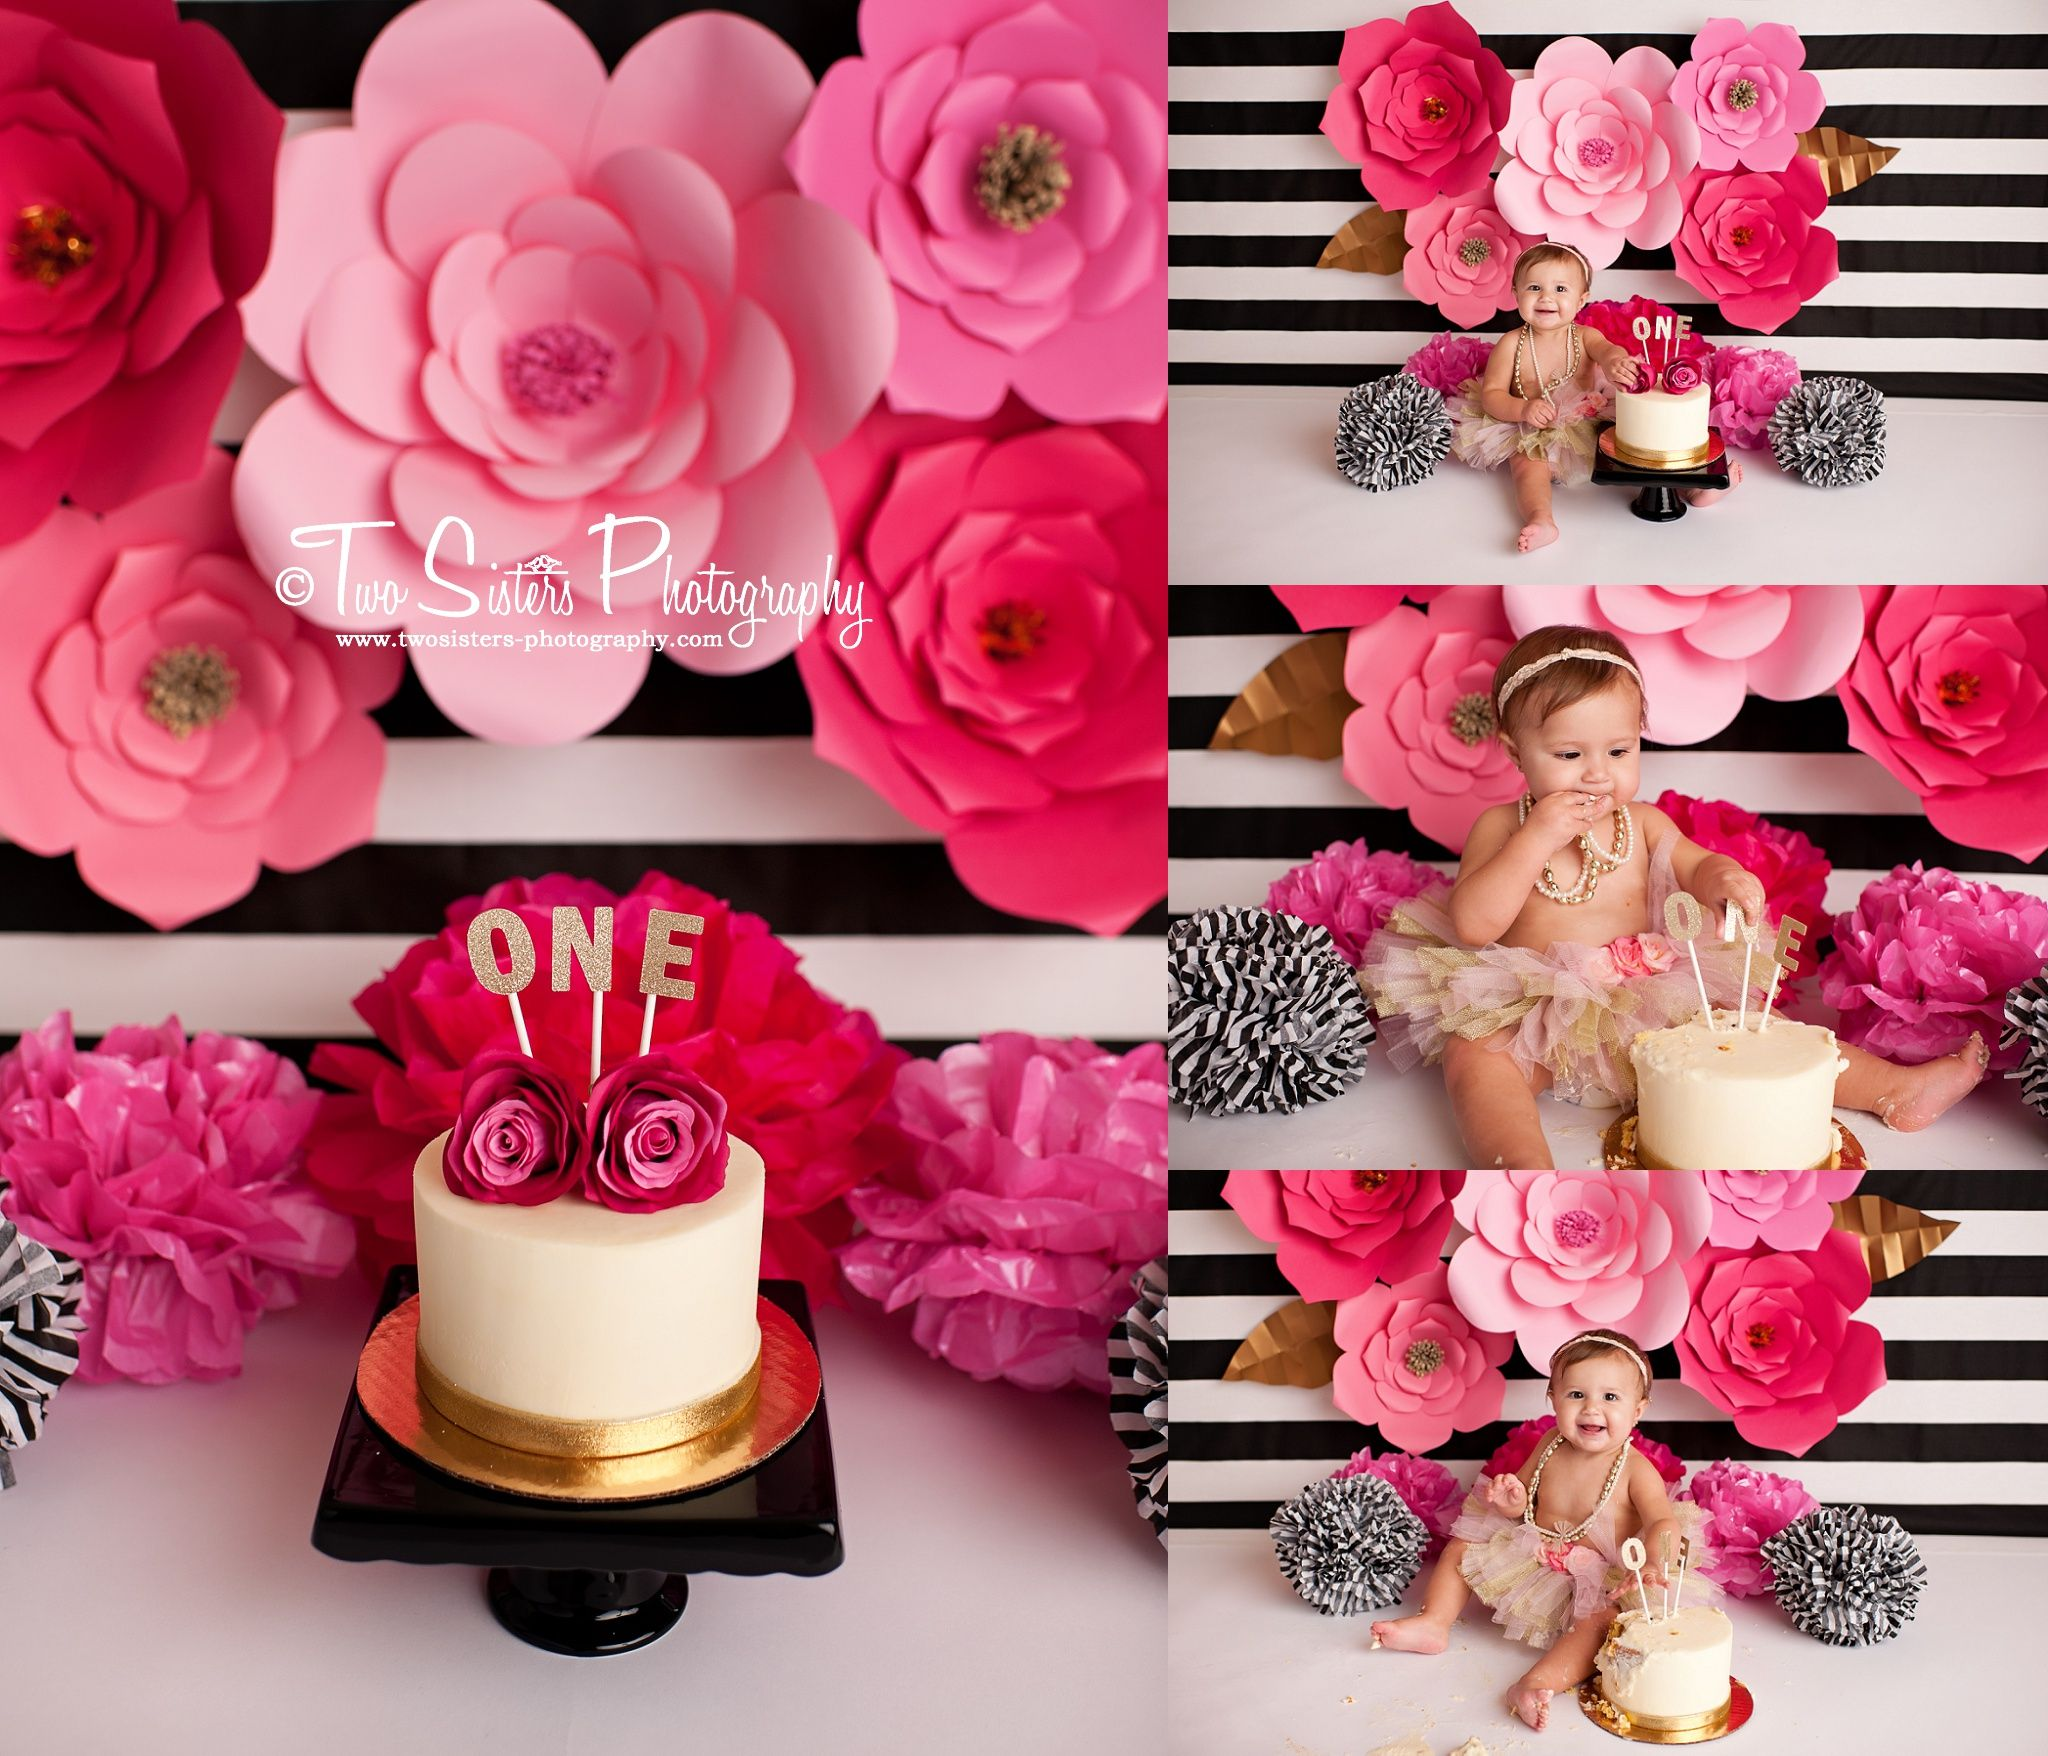 Two Sisters Photography Cake Smash Sessions Pink Floral Cake Smash Pink And Black Black And Whit Birthday Cake Smash Smash Cake Girl Smash Cake Photoshoot